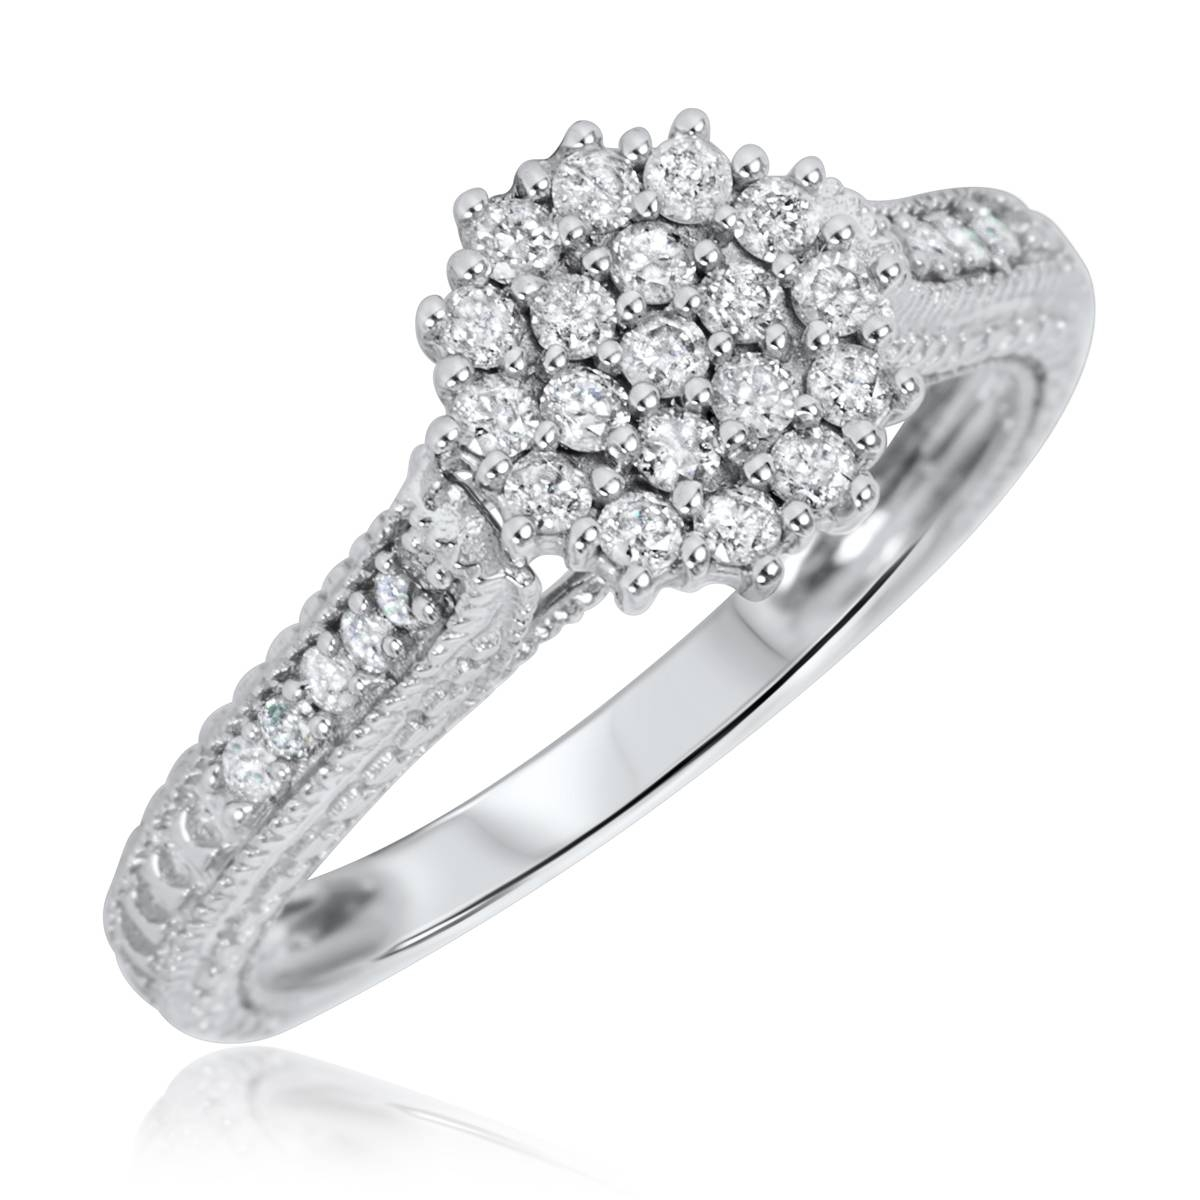 1 Carat Diamond Trio Wedding Ring Set 14K White Gold Pertaining To Size 4 White Gold Engagement Rings (Gallery 14 of 15)